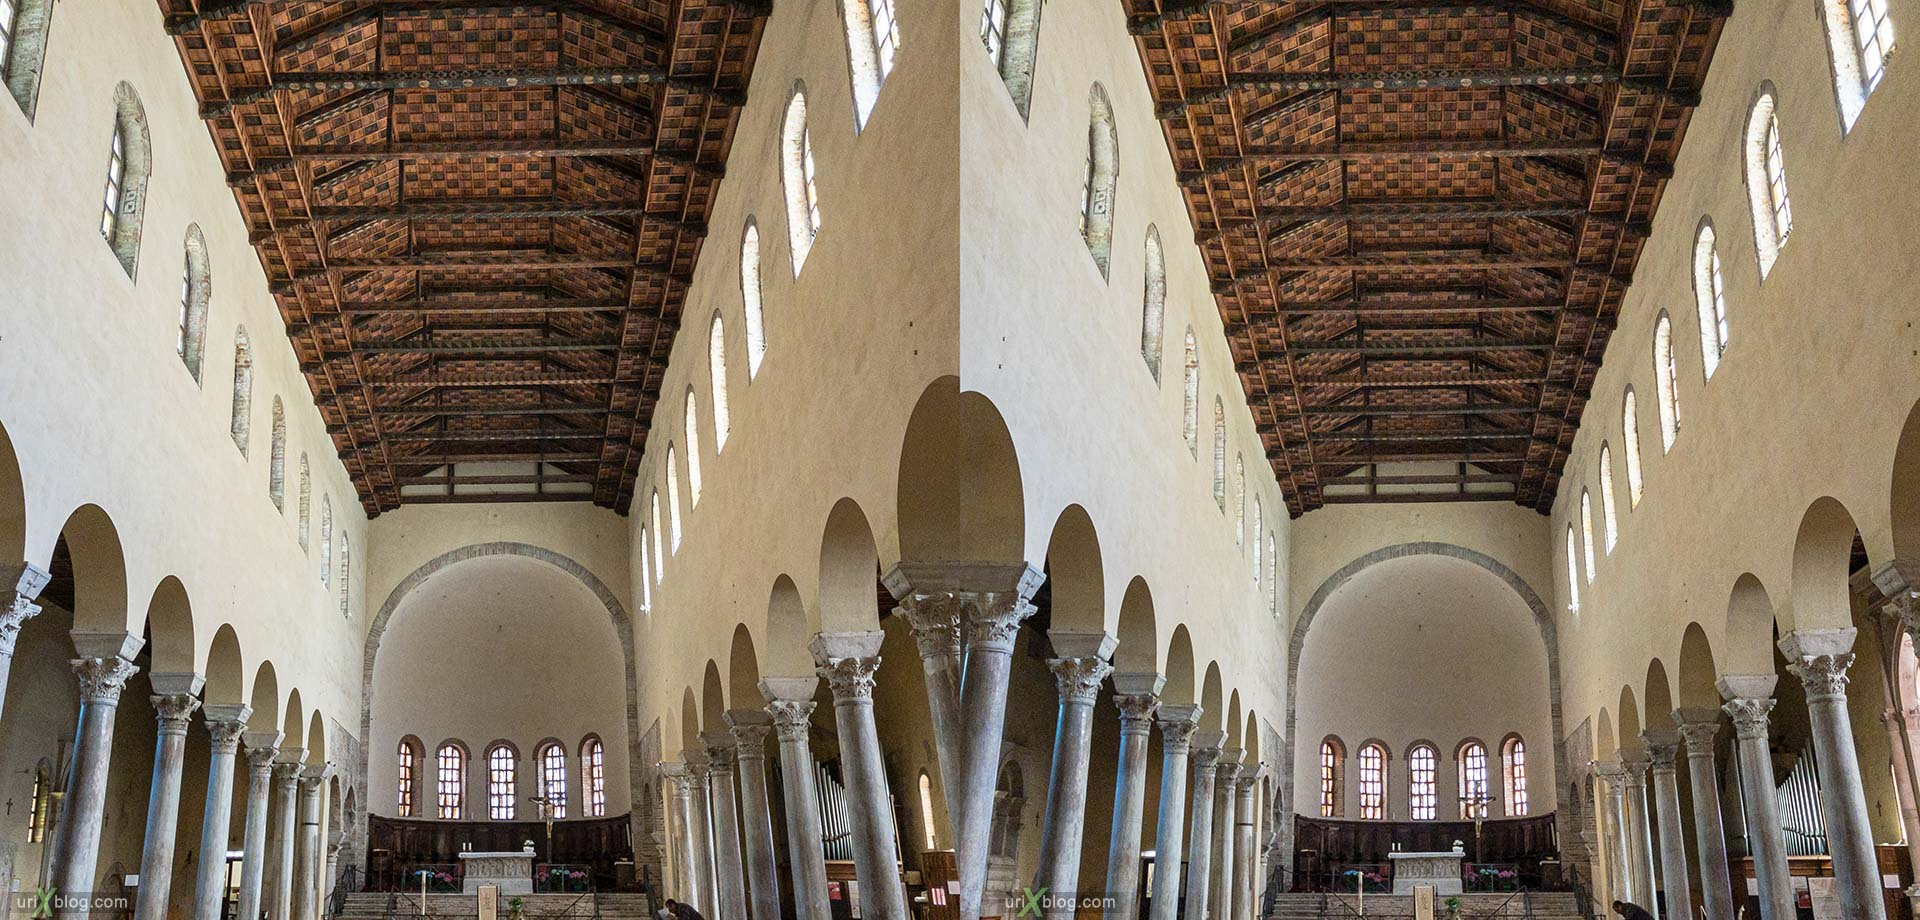 Basilica of Saint Francis, Ravenna, Italy, 3D, stereo pair, cross-eyed, crossview, cross view stereo pair, stereoscopic